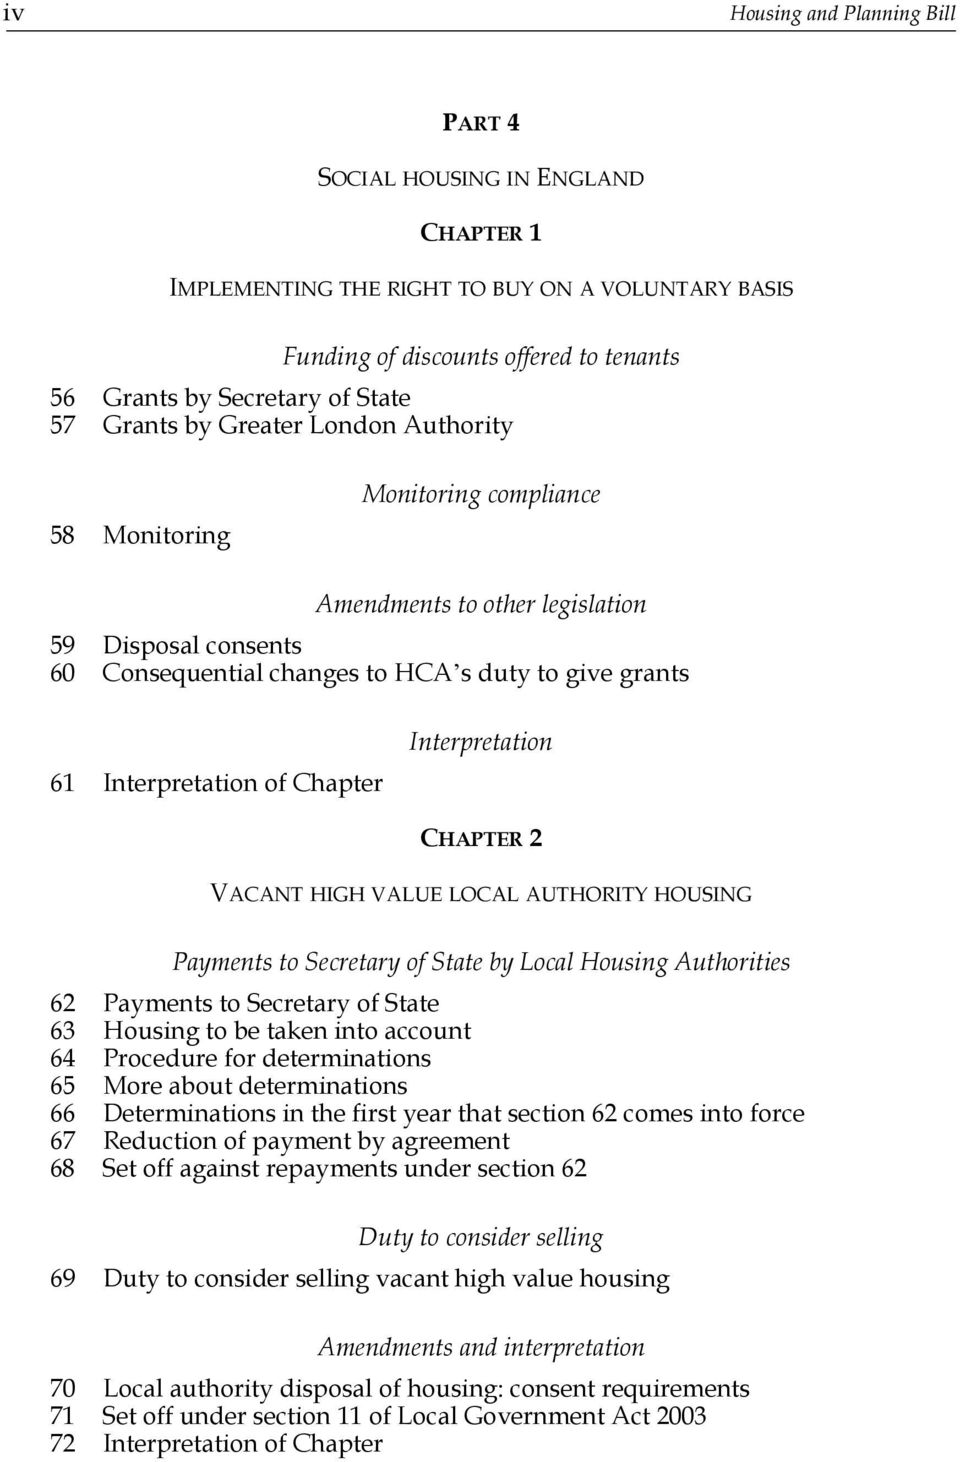 Chapter Interpretation CHAPTER 2 VACANT HIGH VALUE LOCAL AUTHORITY HOUSING Payments to Secretary of State by Local Housing Authorities 62 Payments to Secretary of State 63 Housing to be taken into